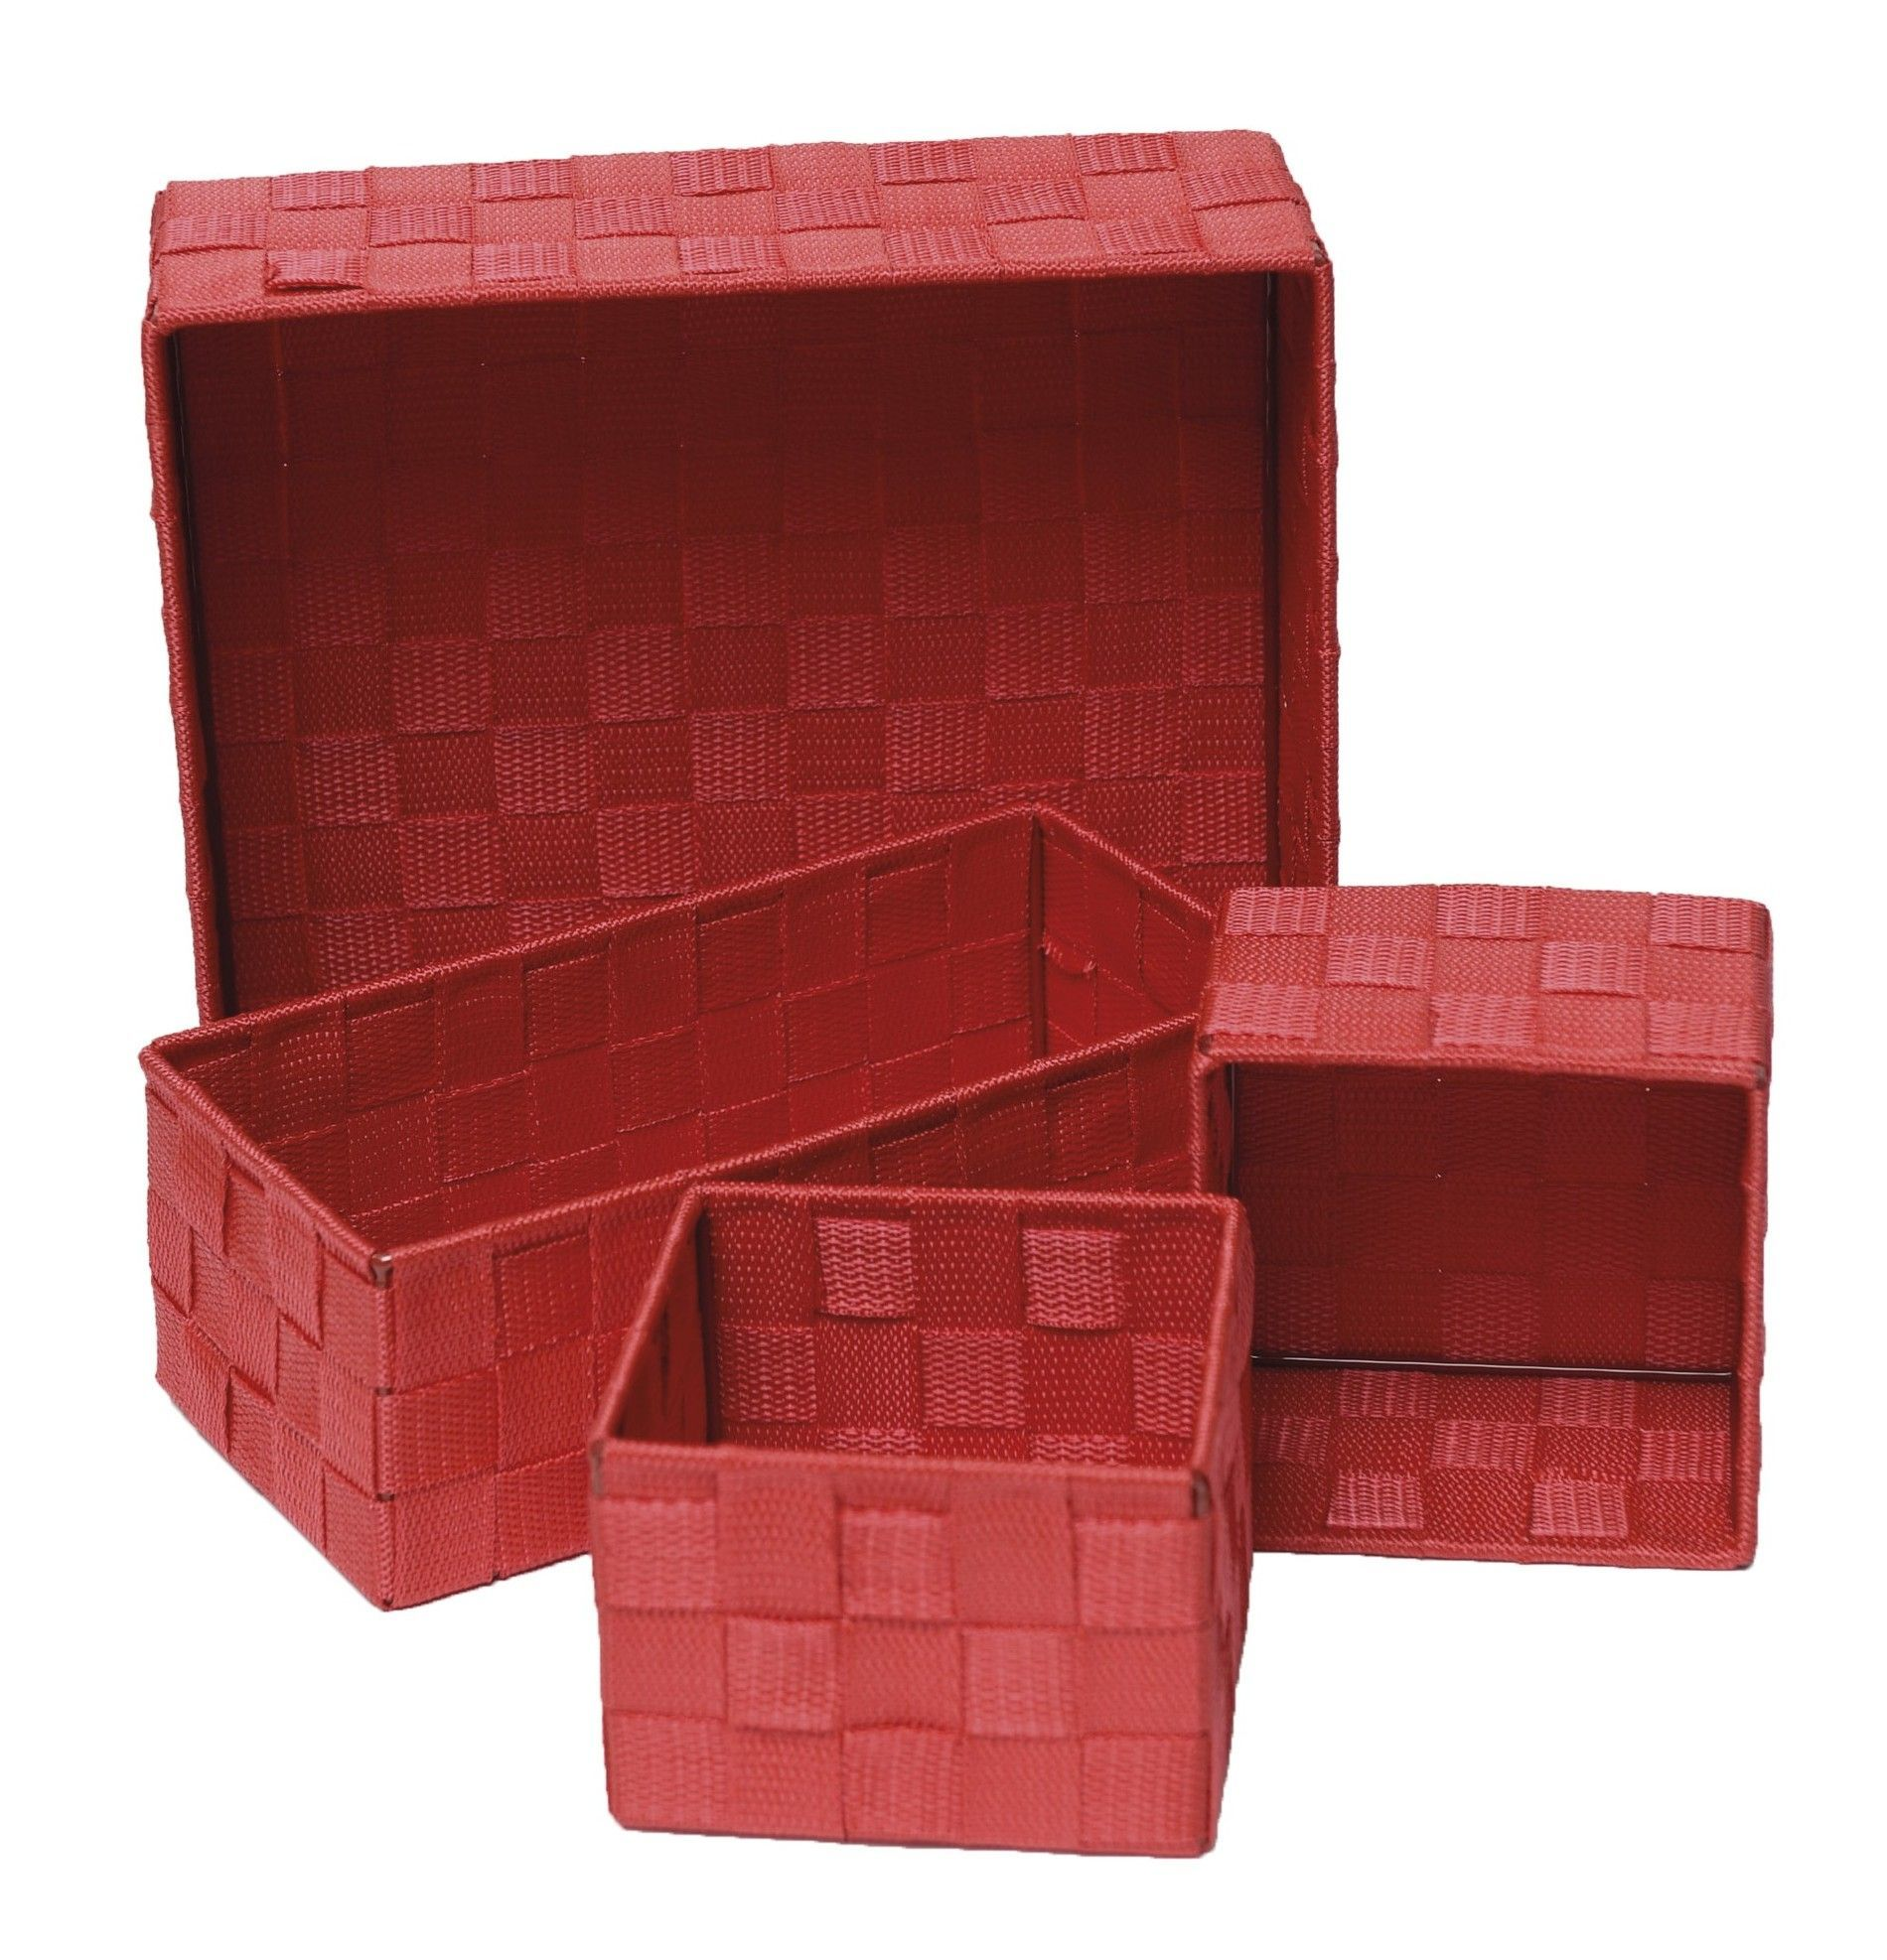 4 Piece Checkered Storage Basket Set